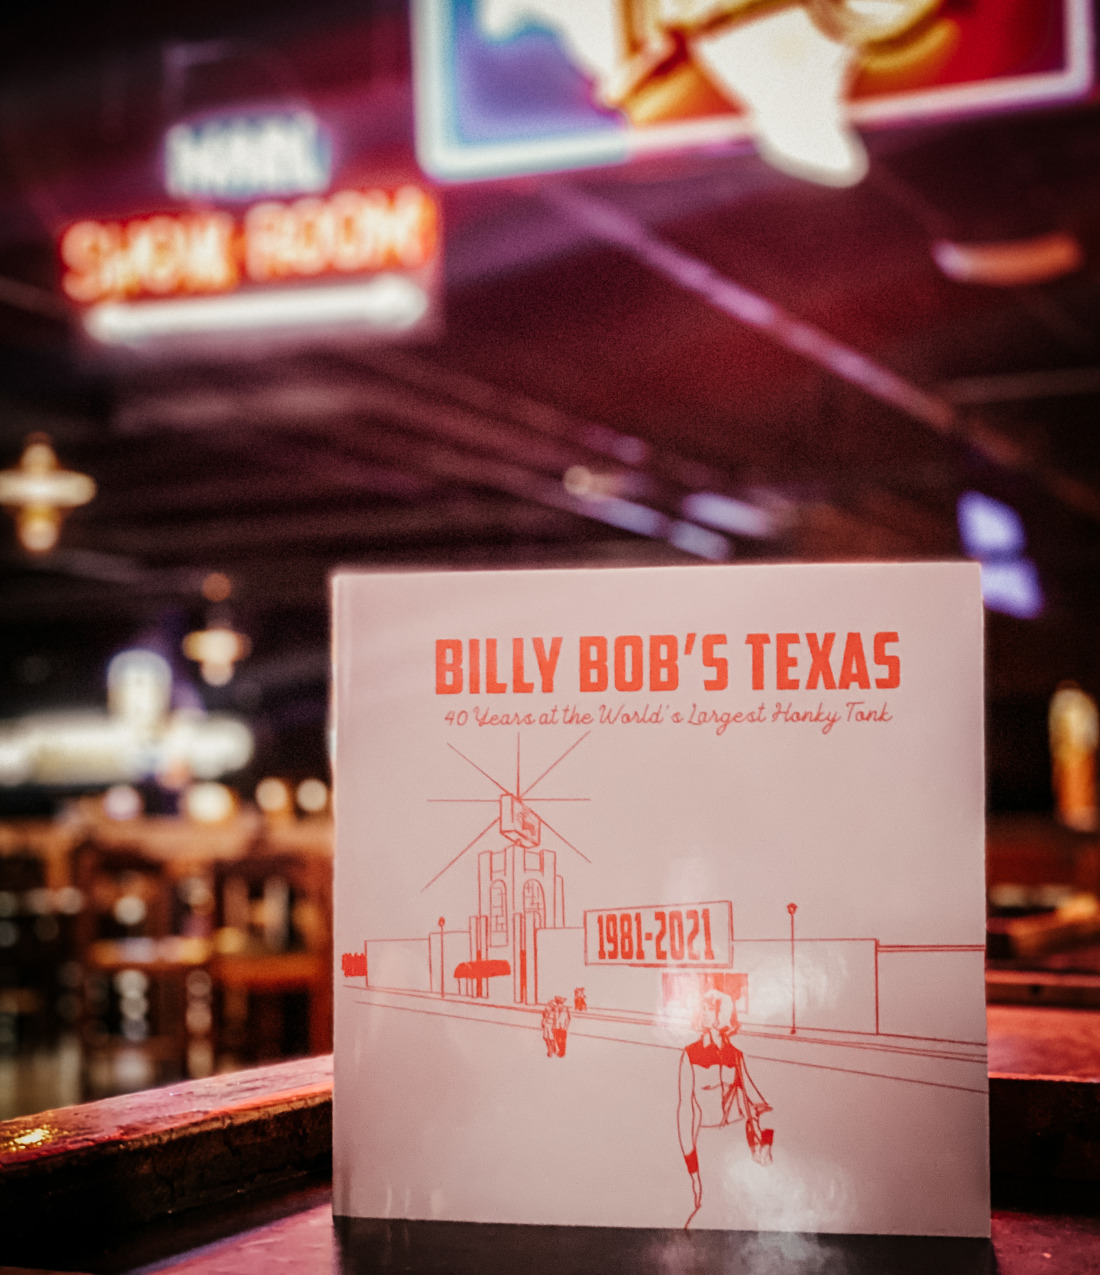 New Shows On Sale at Billy Bob's Texas